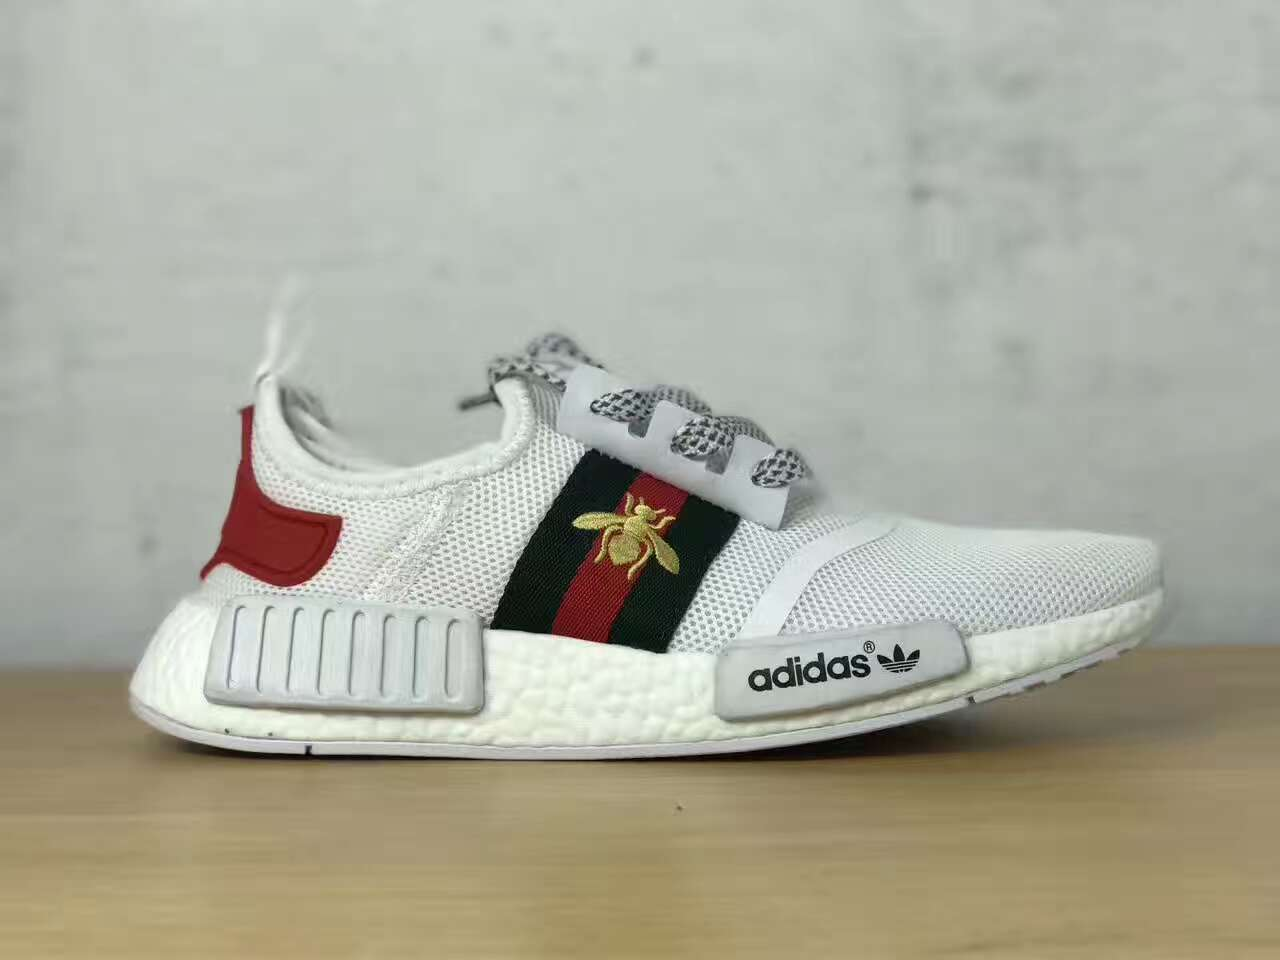 Gucci x Adidas NMD White Bee